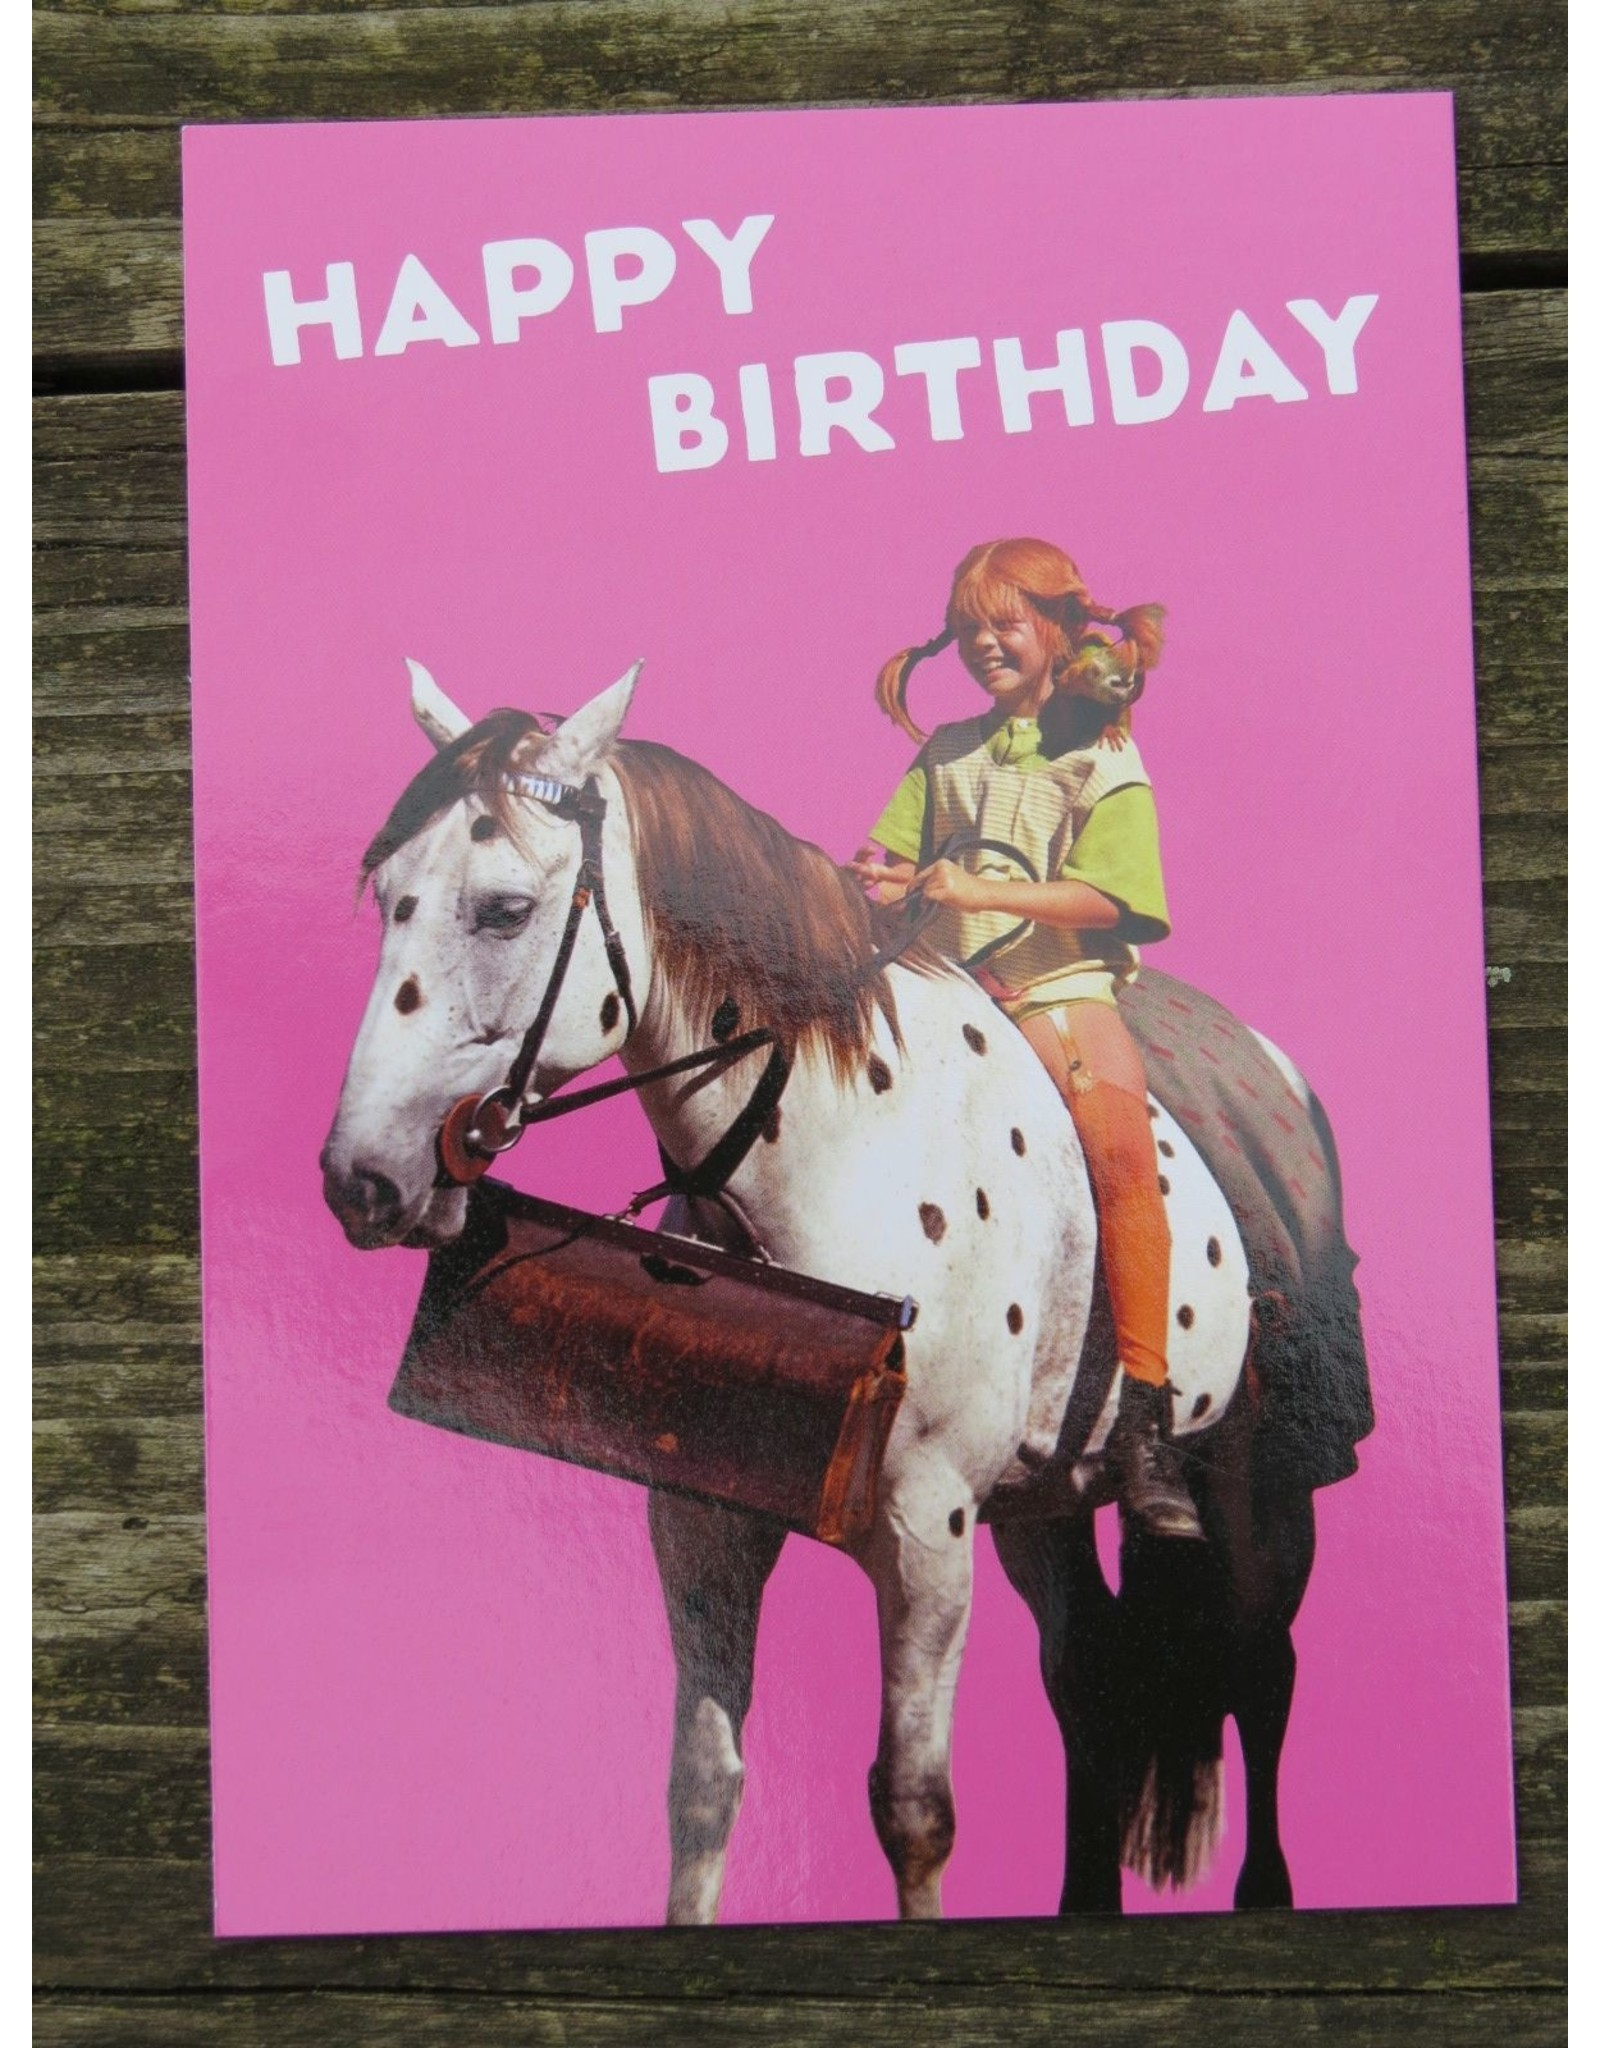 Pippi Langkous Pippi Longstocking birthday card - Little Old Man